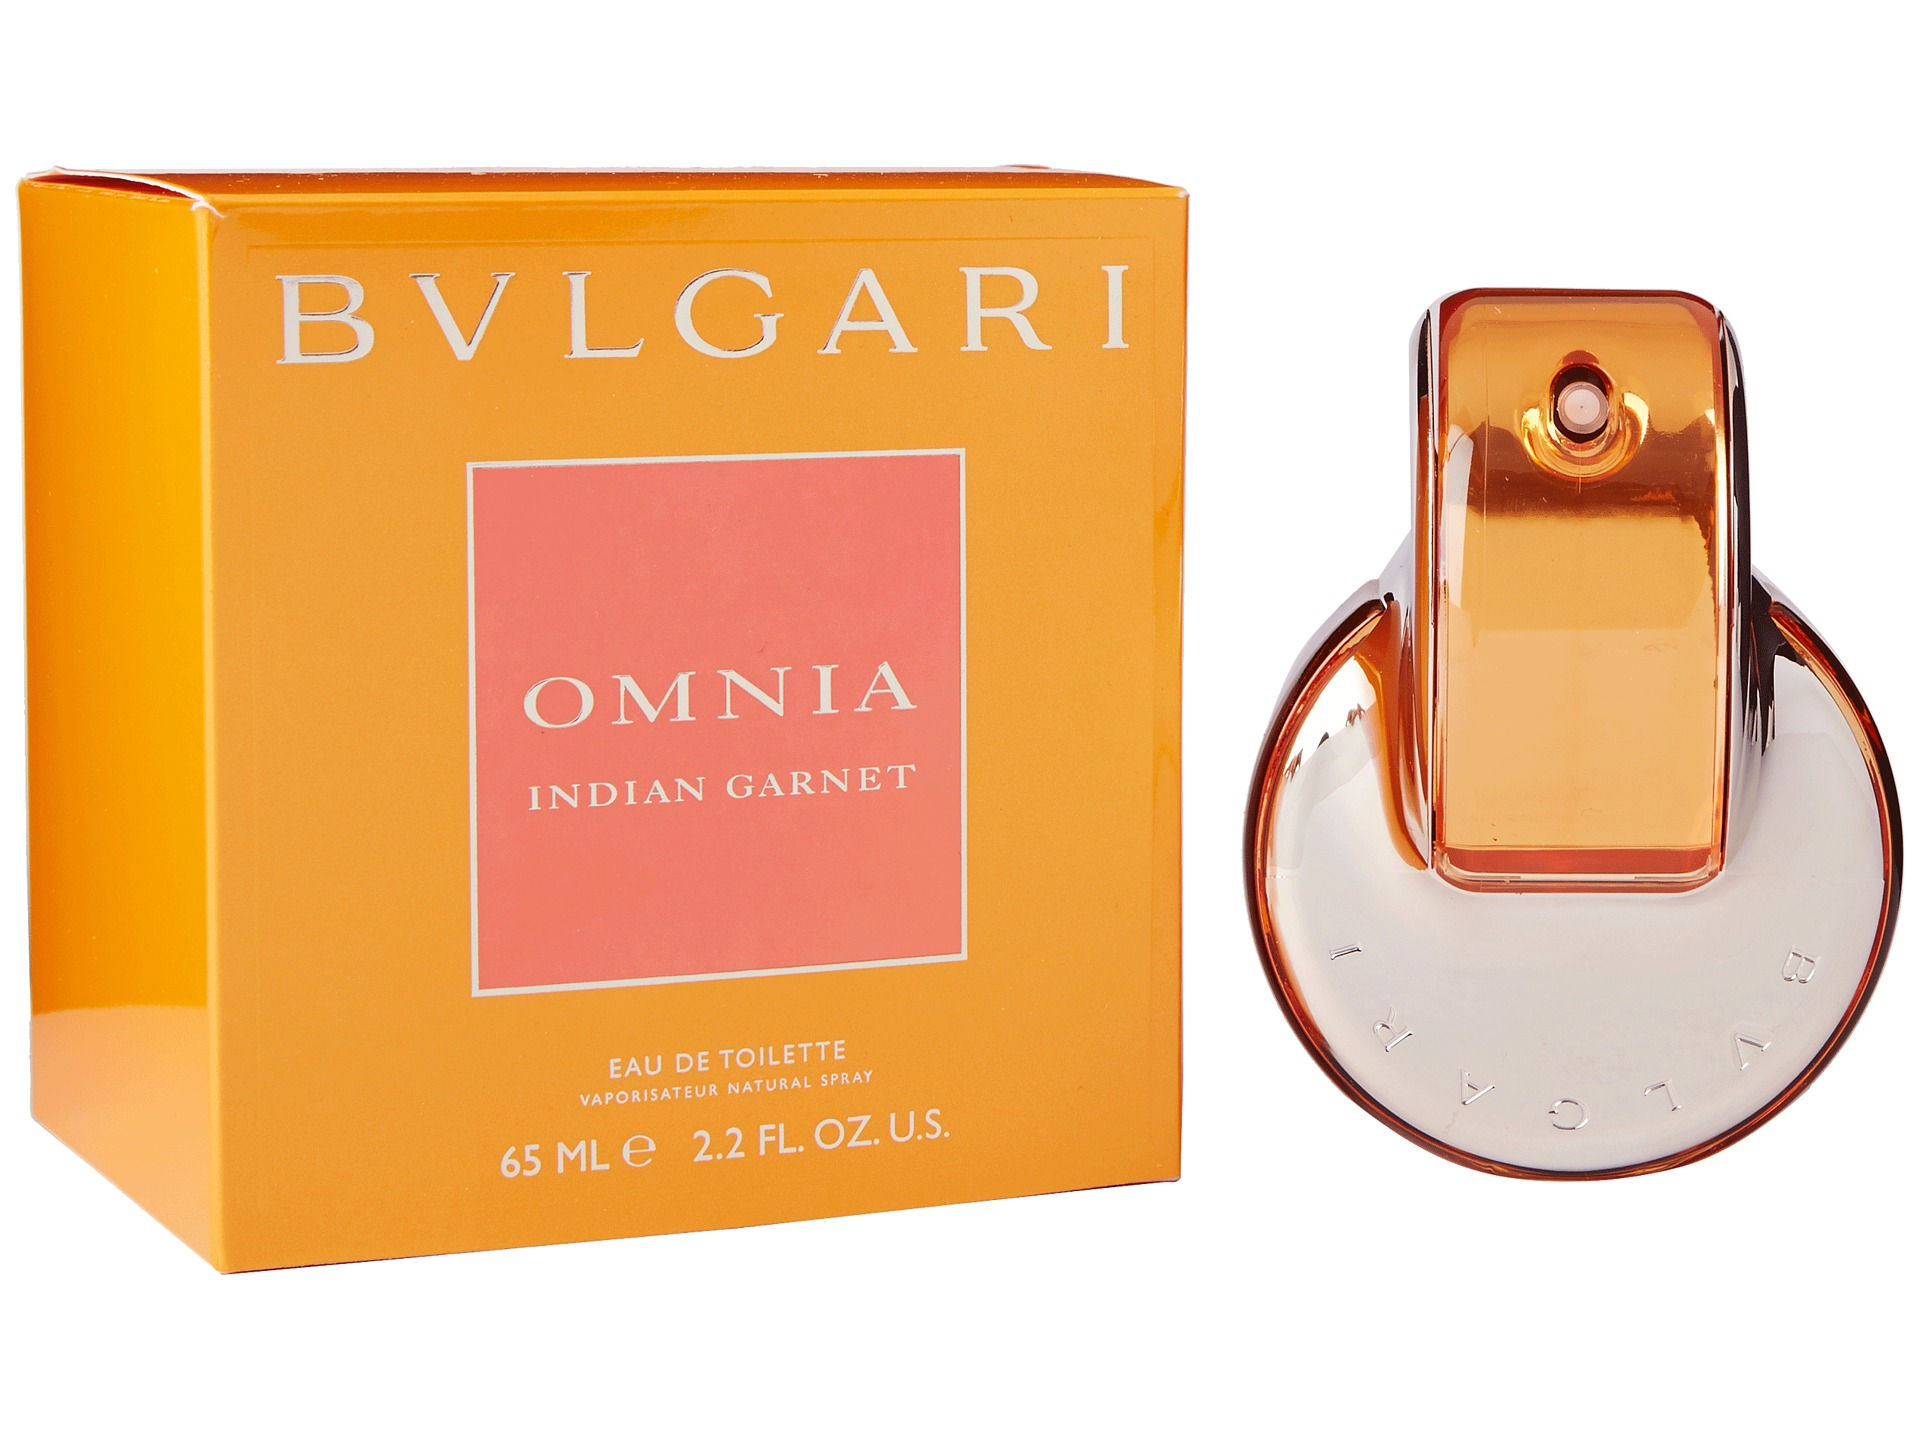 bvlgari omnia indian garnet 2 2 edt shipped free at zappos. Black Bedroom Furniture Sets. Home Design Ideas